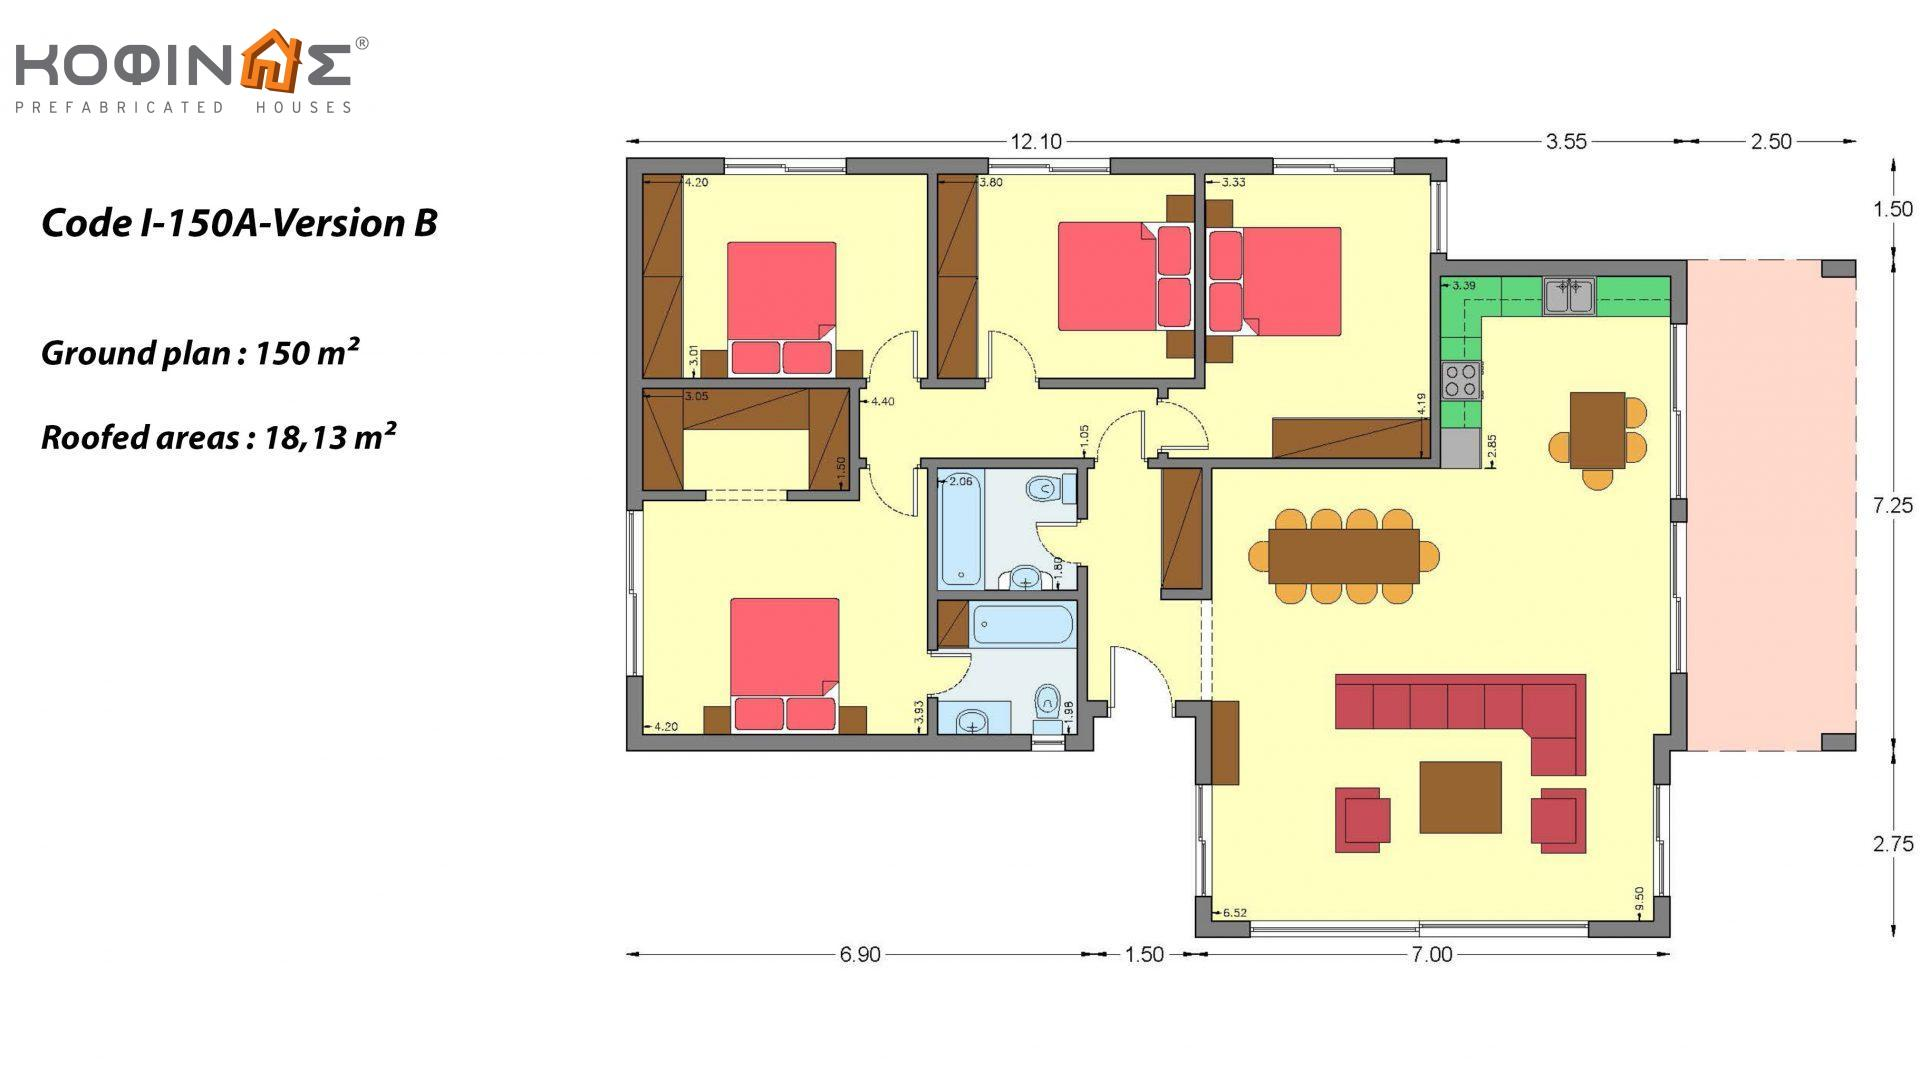 1-story house Ι-150Α, total surface of 150 m², roofed areas 18,13 m²